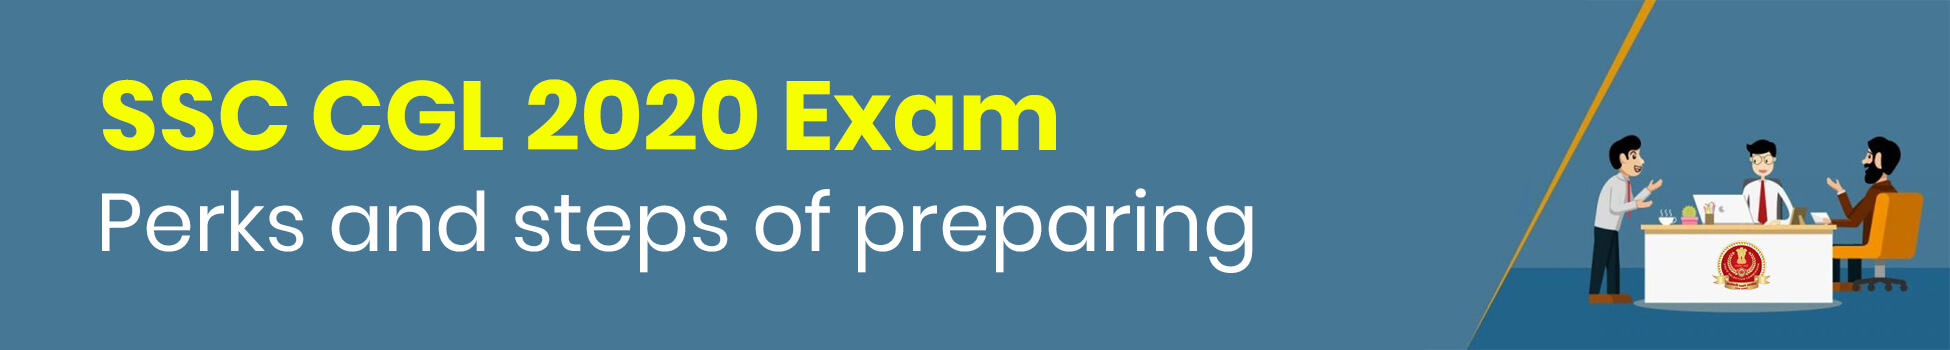 Perks and steps of preparing for SSC CGL 2020 Exam